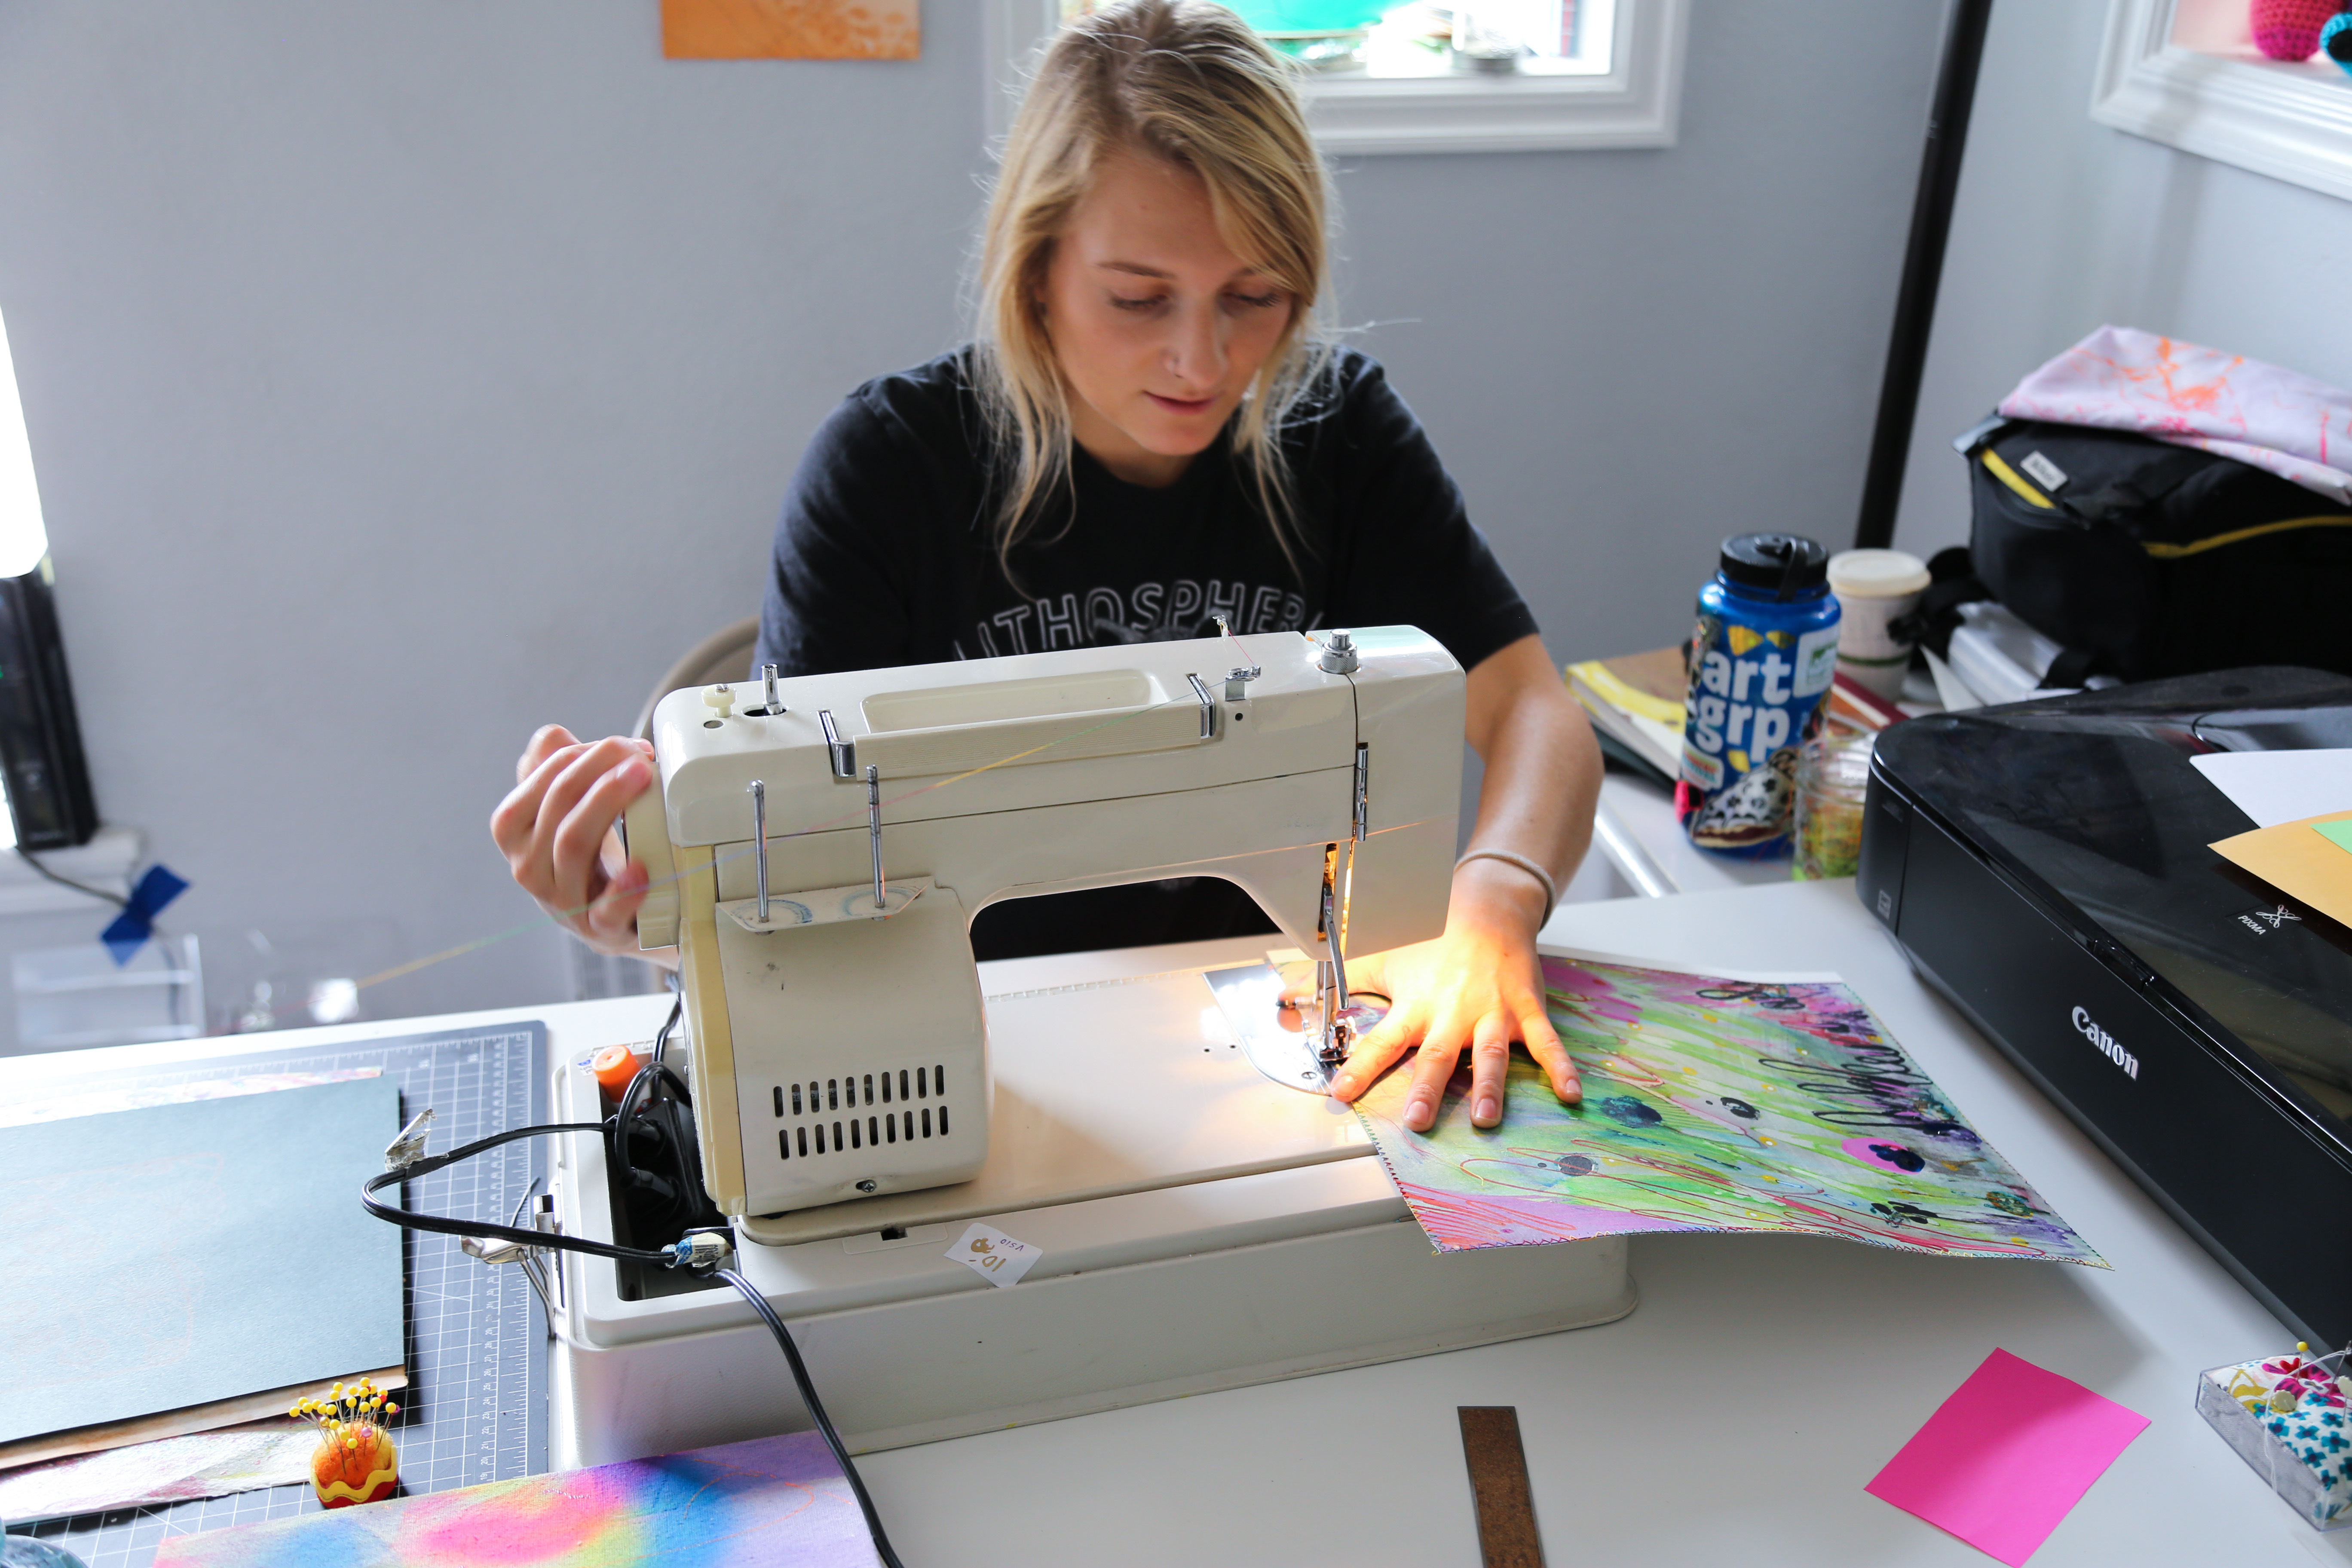 A person sits at a sewing machine, working on a colorful abstract panel